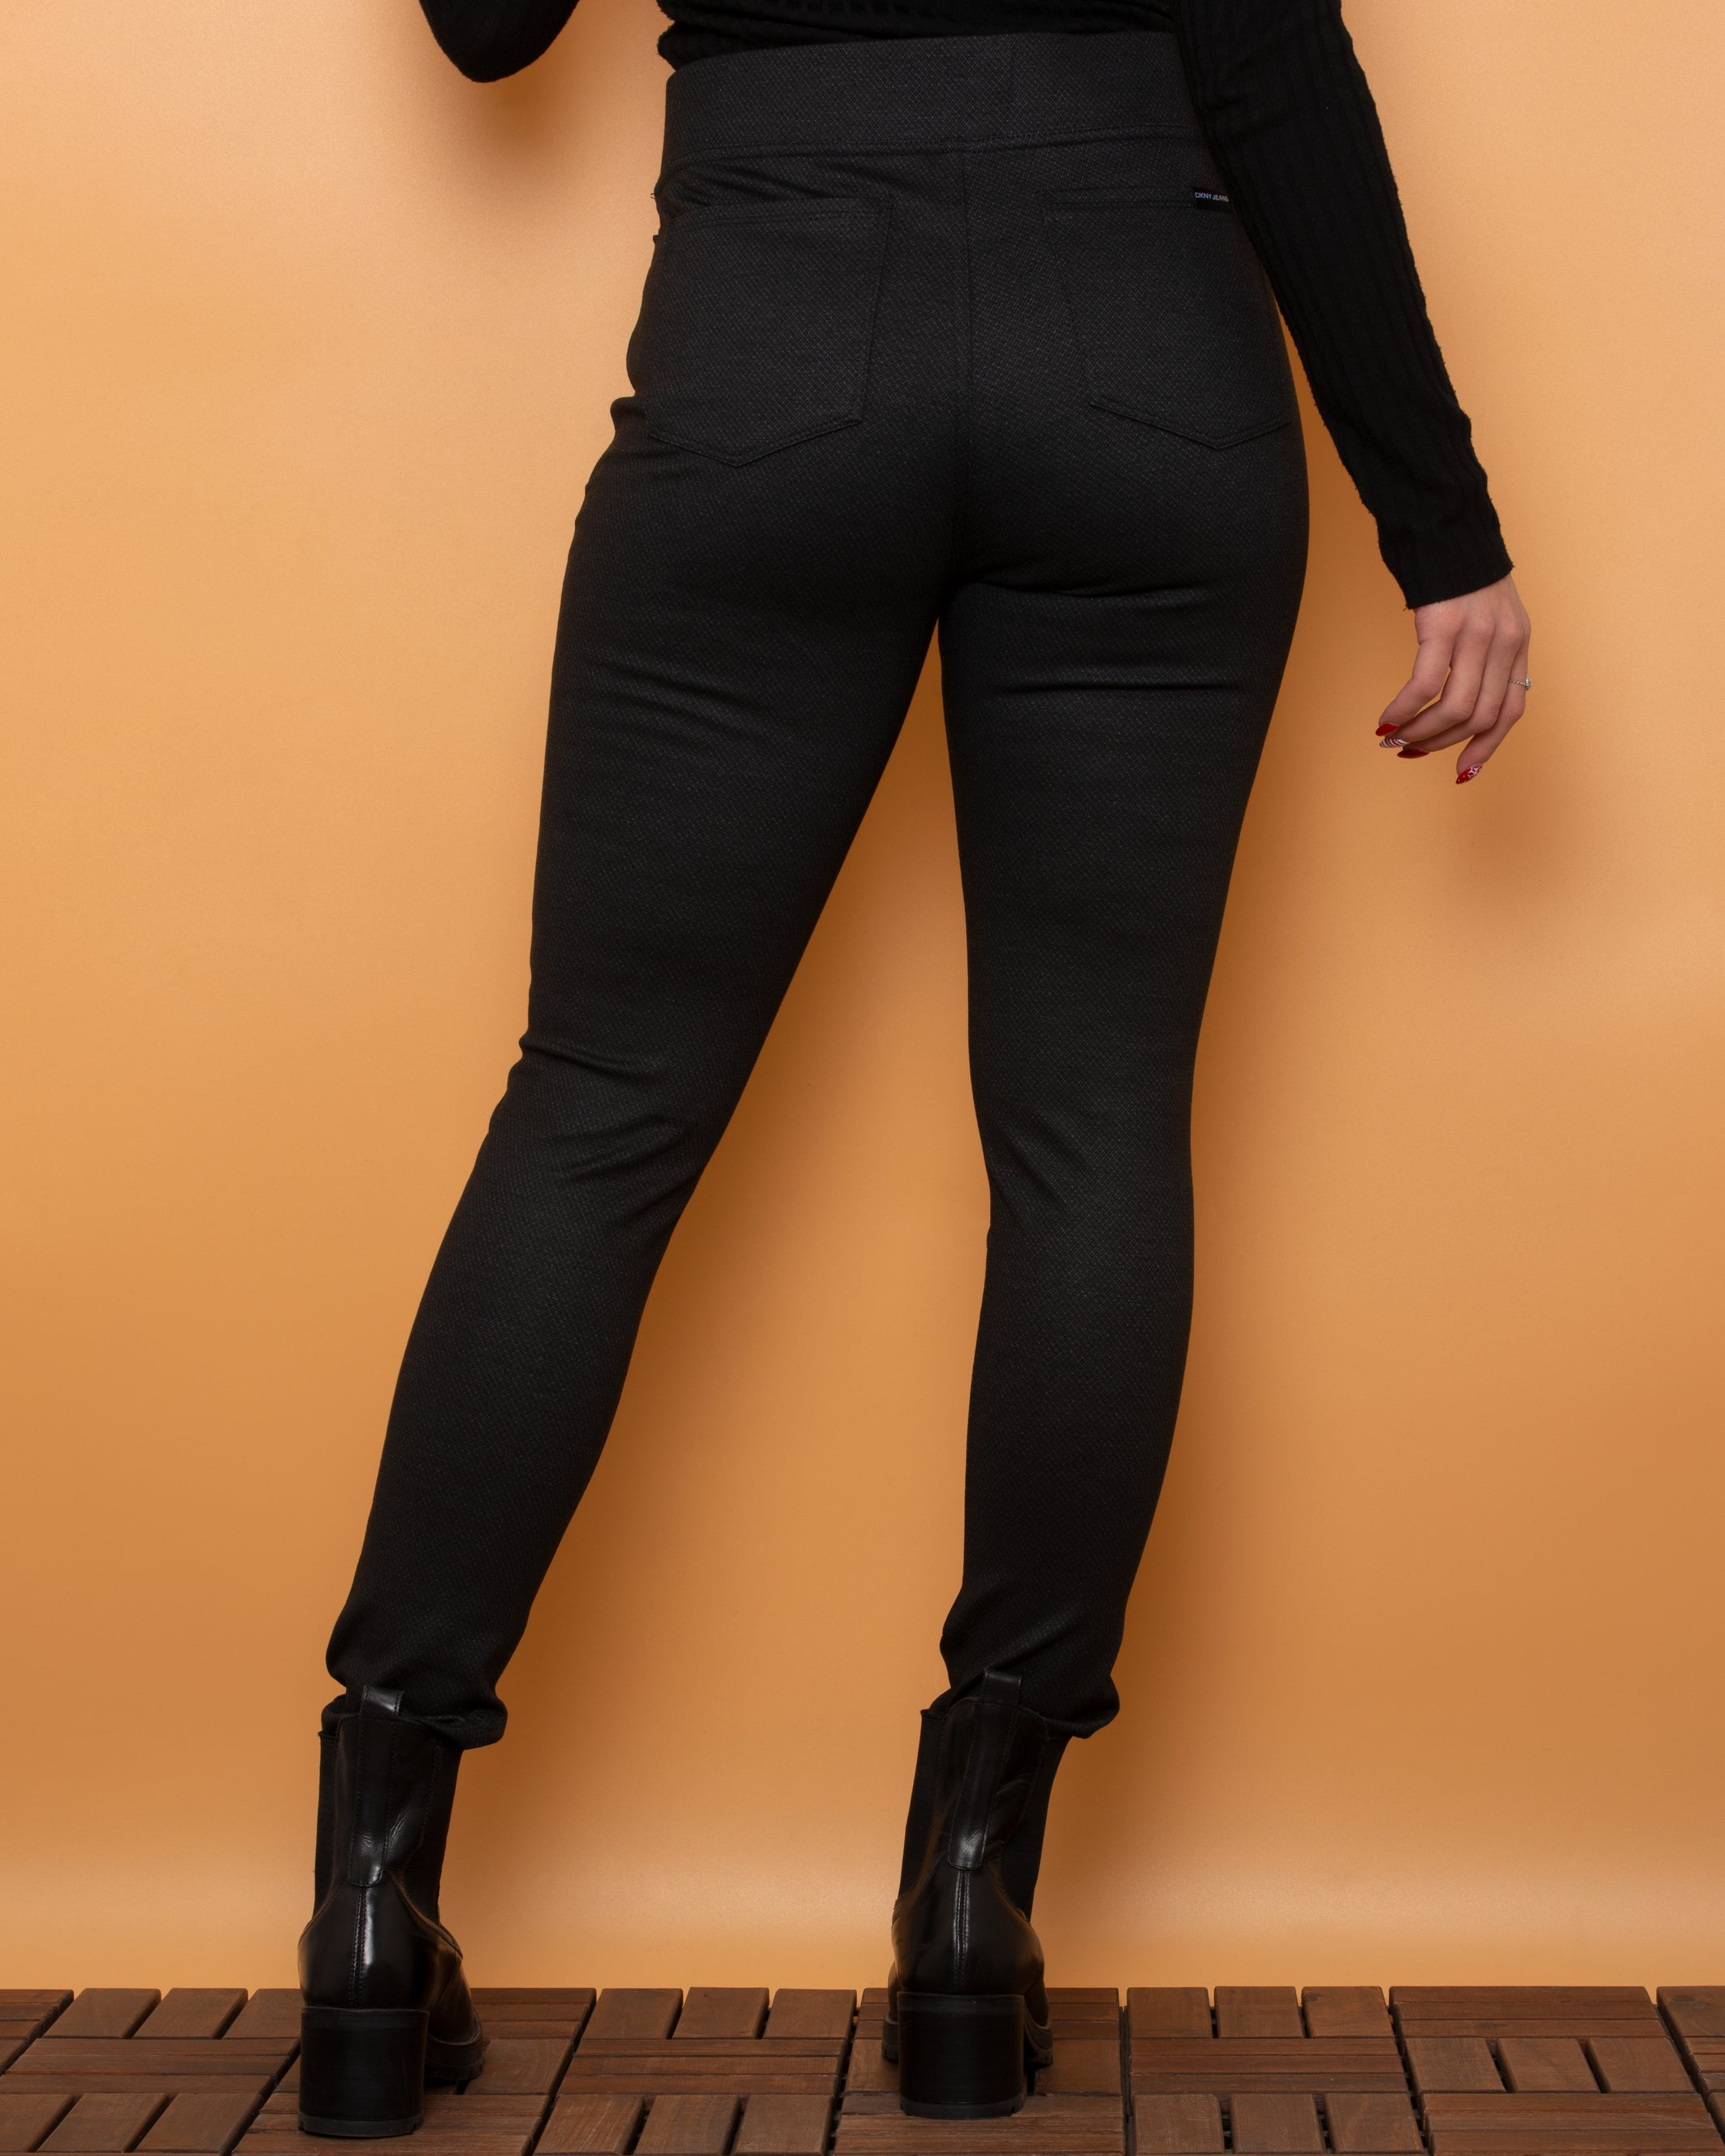 Dkny jeans women leggings -charchole-